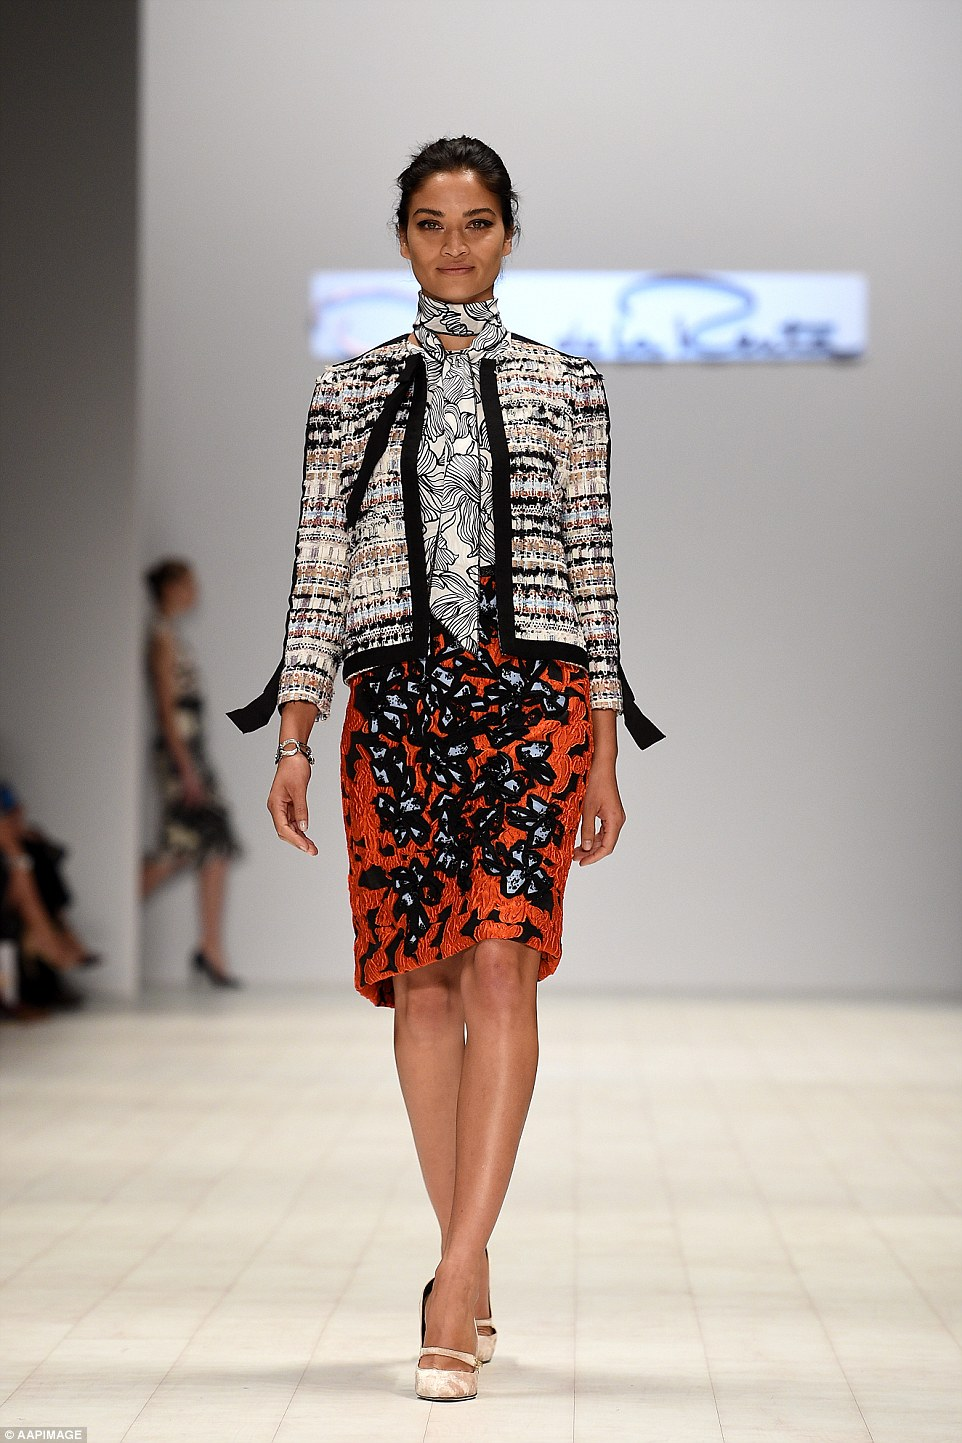 Here she comes: Supermodel Shanina Shaik stunned on the catwalk for Oscar de la Renta in an orange printed skirt and patterned jacket